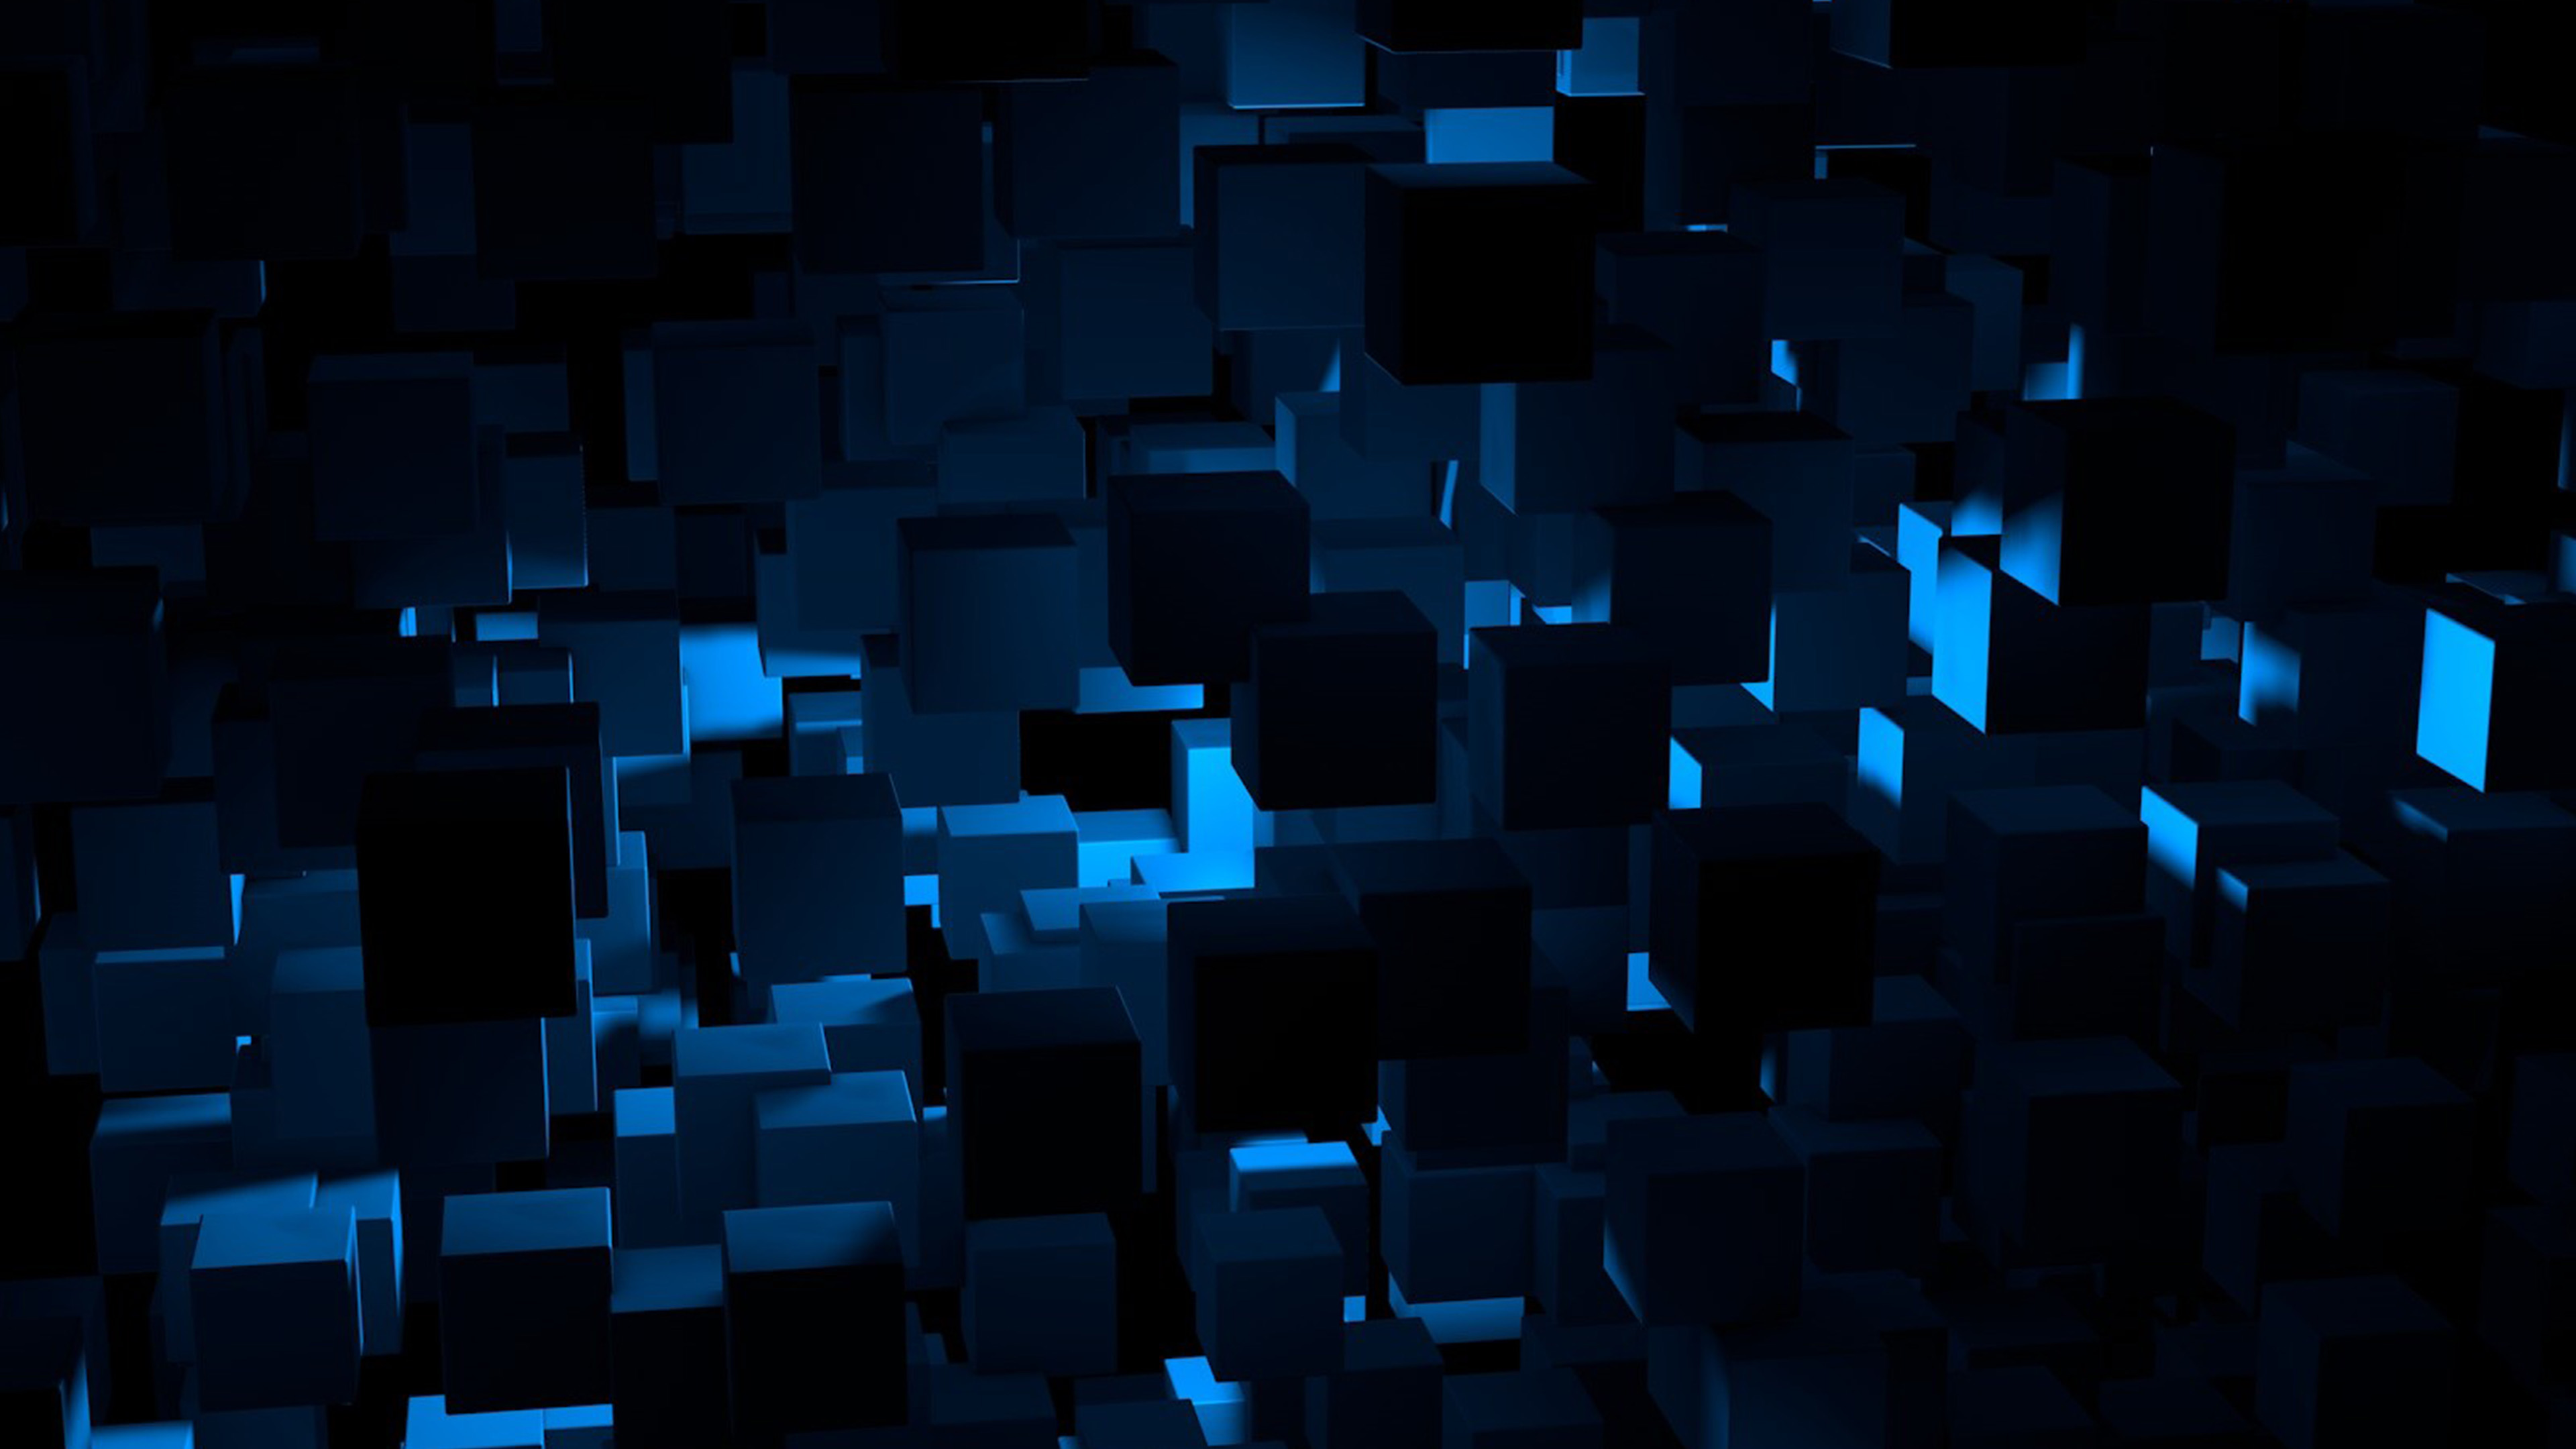 White Wave 3d Wallpaper Vn22 Cube Dark Blue Abstract Pattern Wallpaper